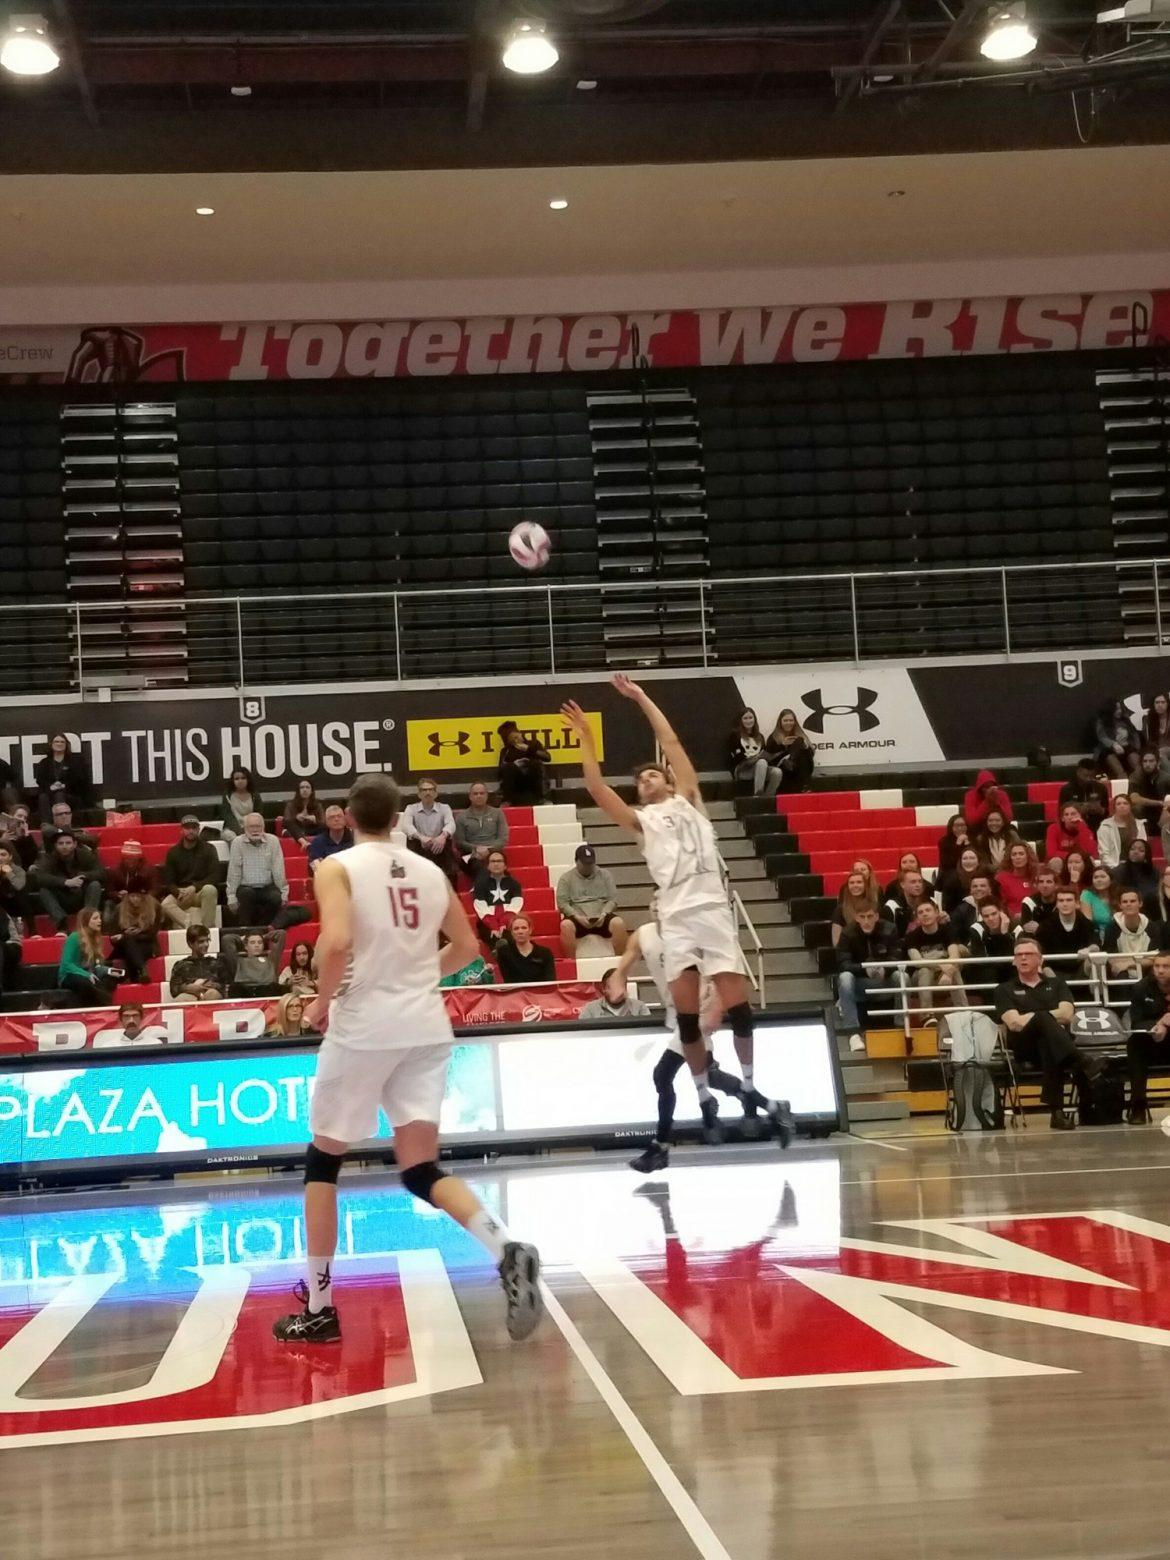 CSUN+men%27s+volleyball+sets+up+the+ball+to+get+it+over+the+net+and+score+over+the+Kingsmen.+Photo+credit%3A+Tera+Trujillo